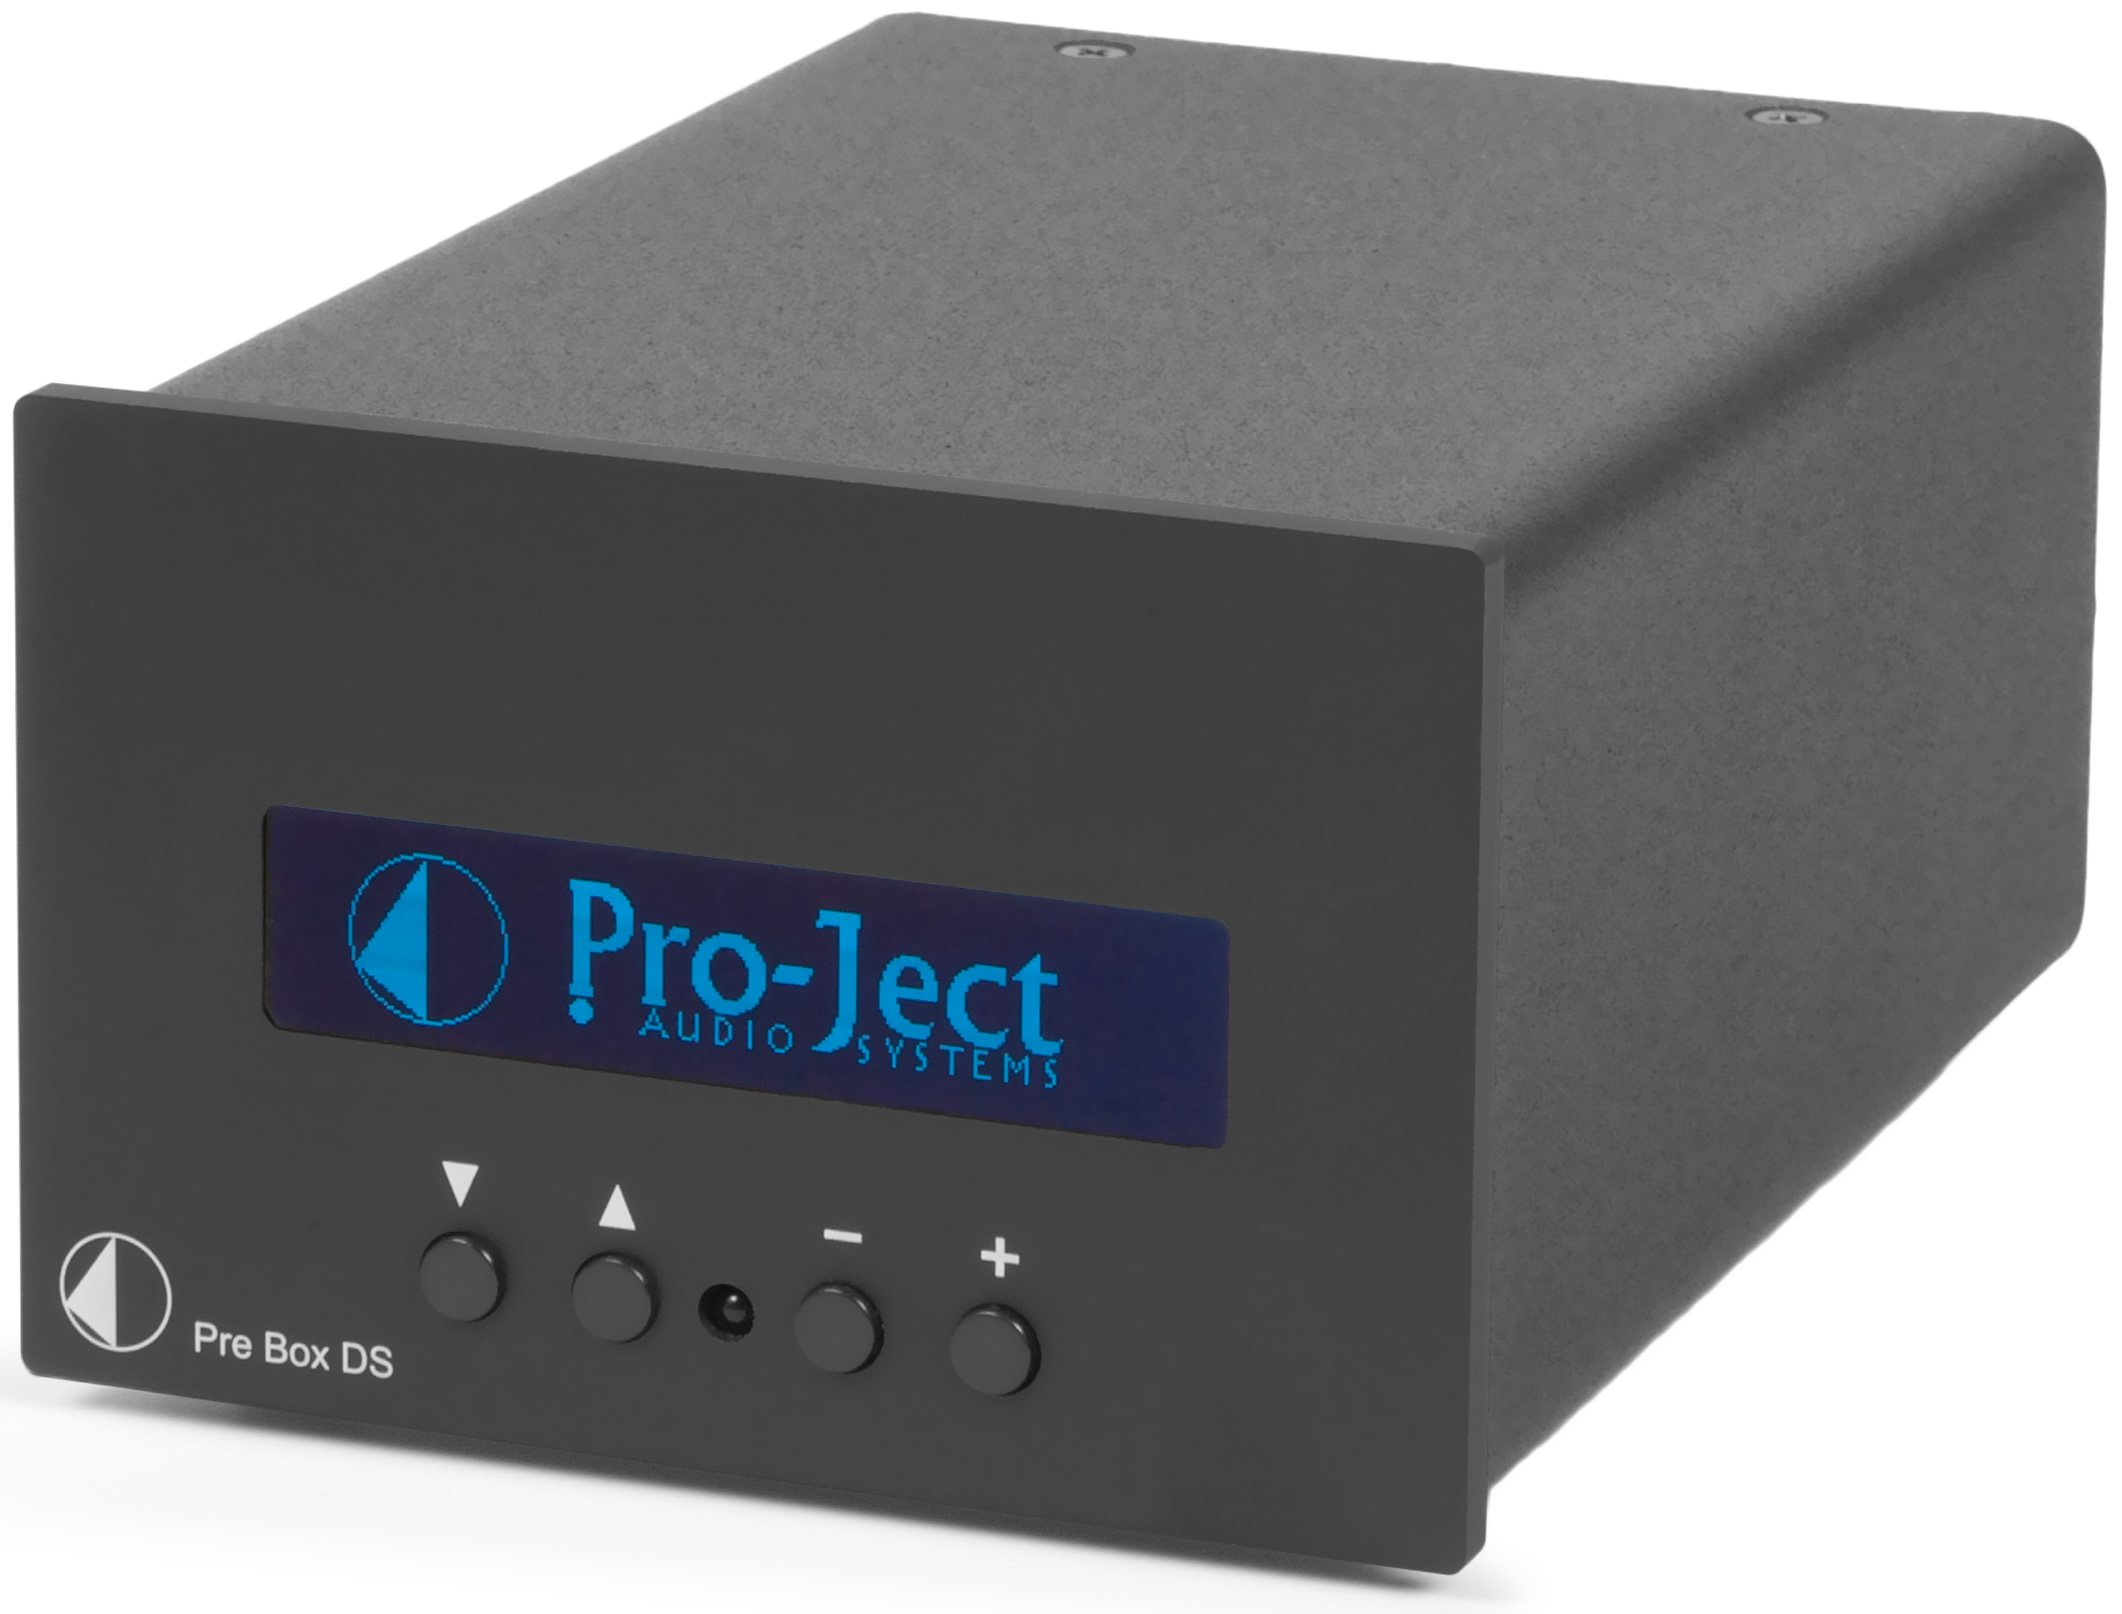 Pro-Ject Pre Box DS Audiophile PreAmplifier,Black by Pro-Ject